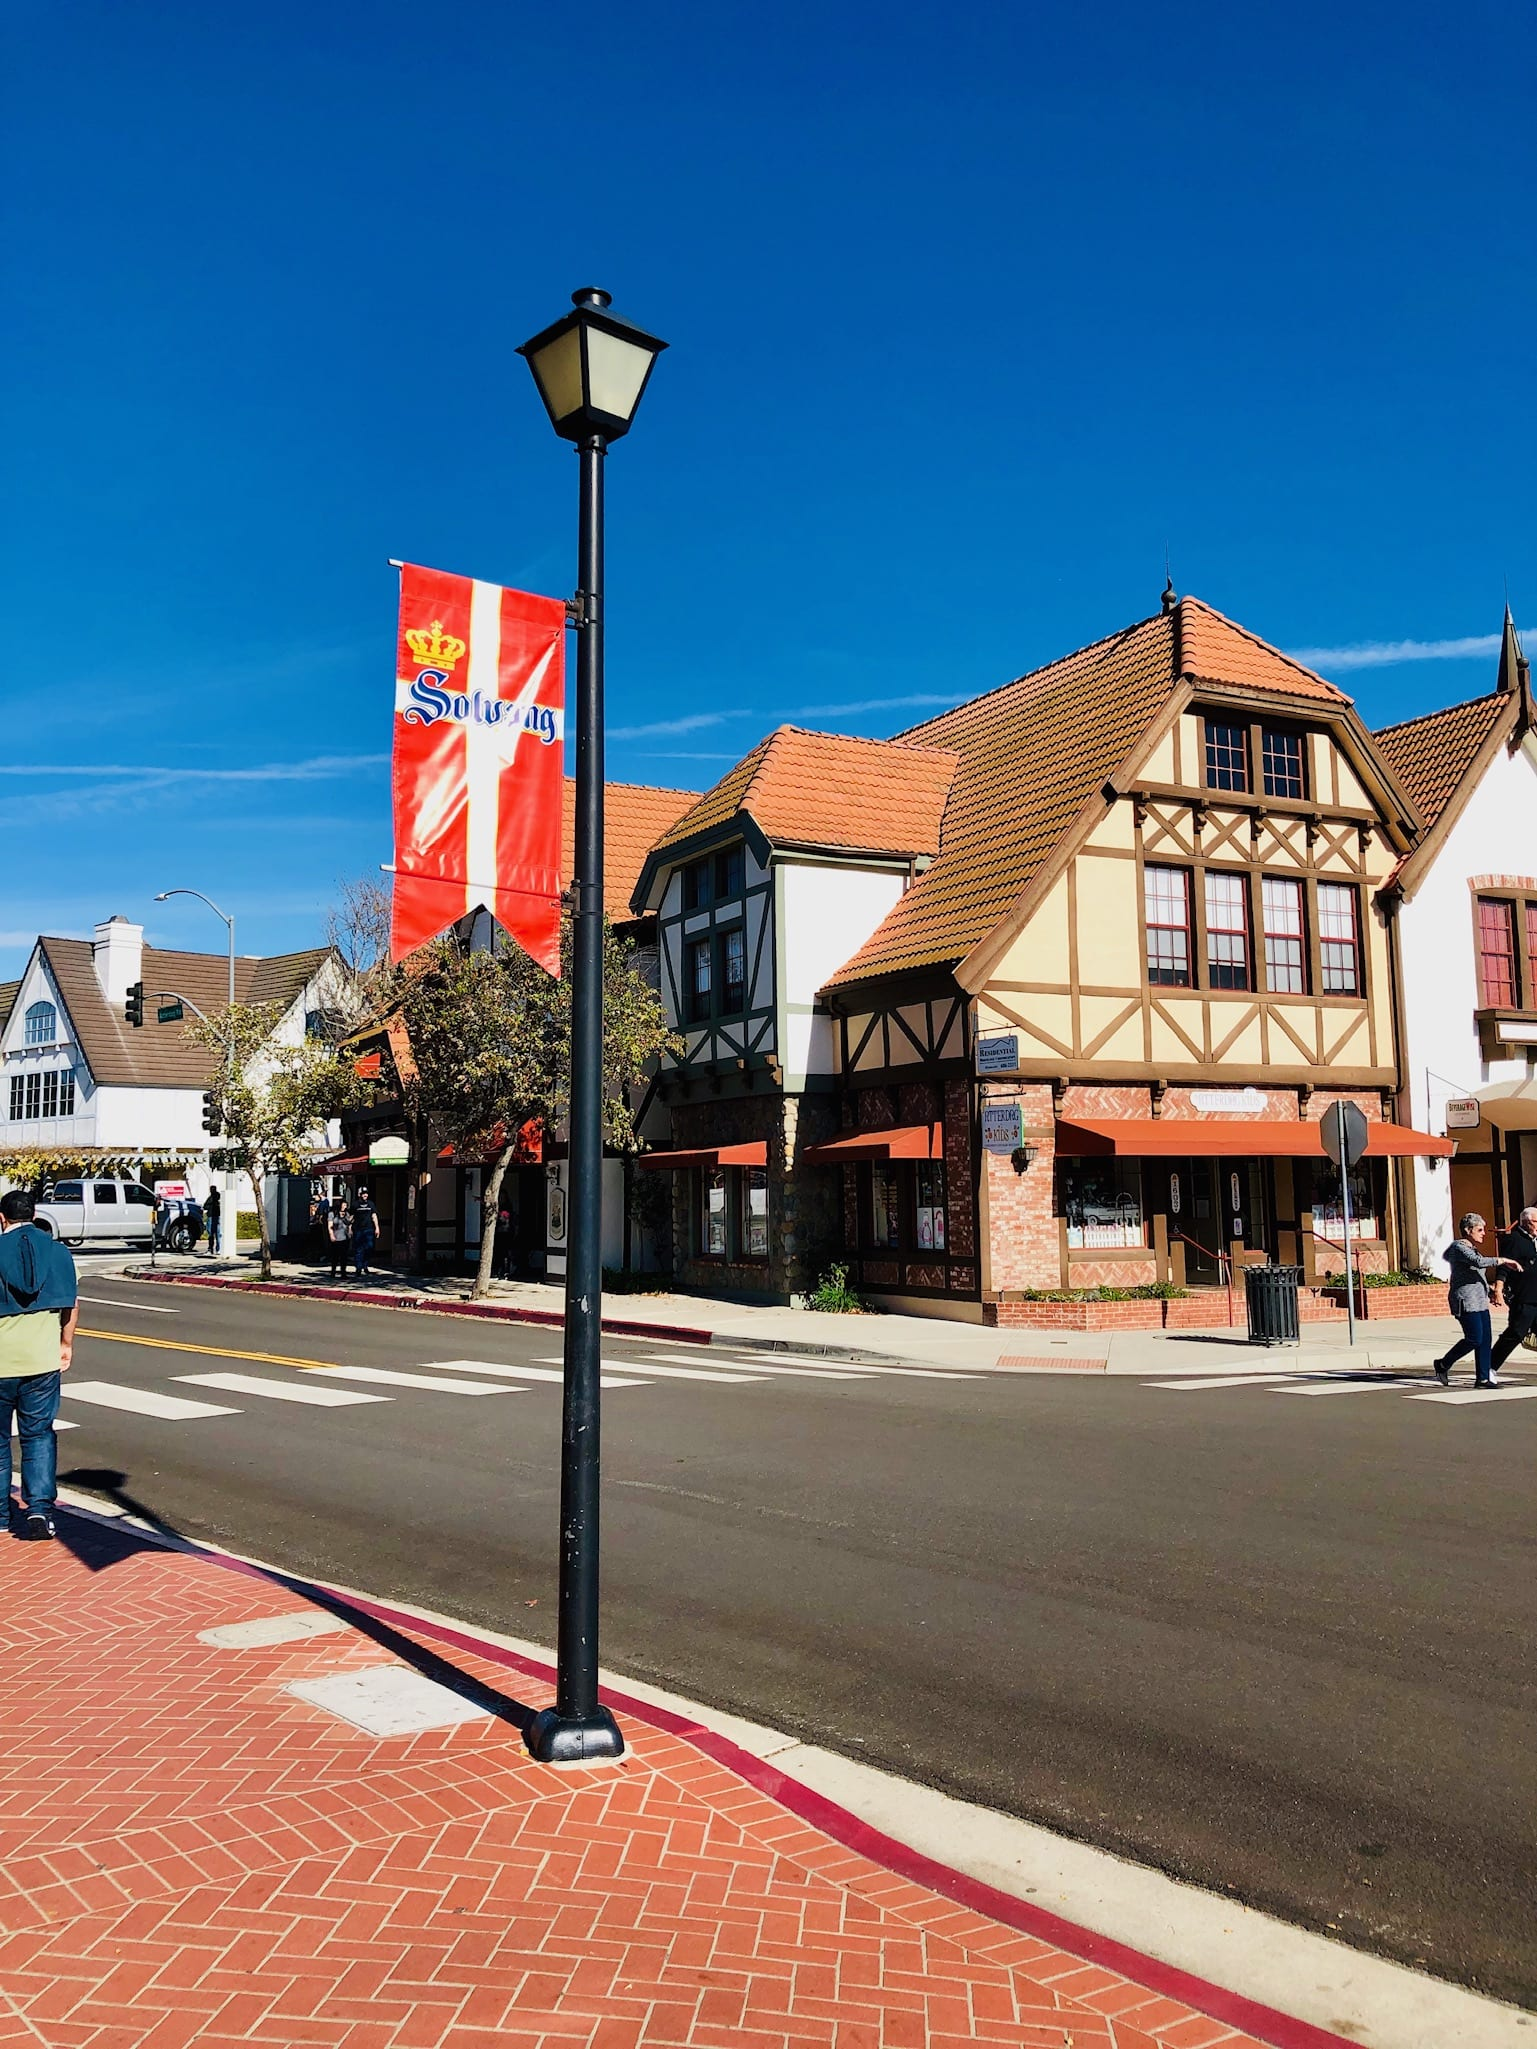 Image of Solvang Flag on Lamp Post, buildings in Danish architectural style in the background